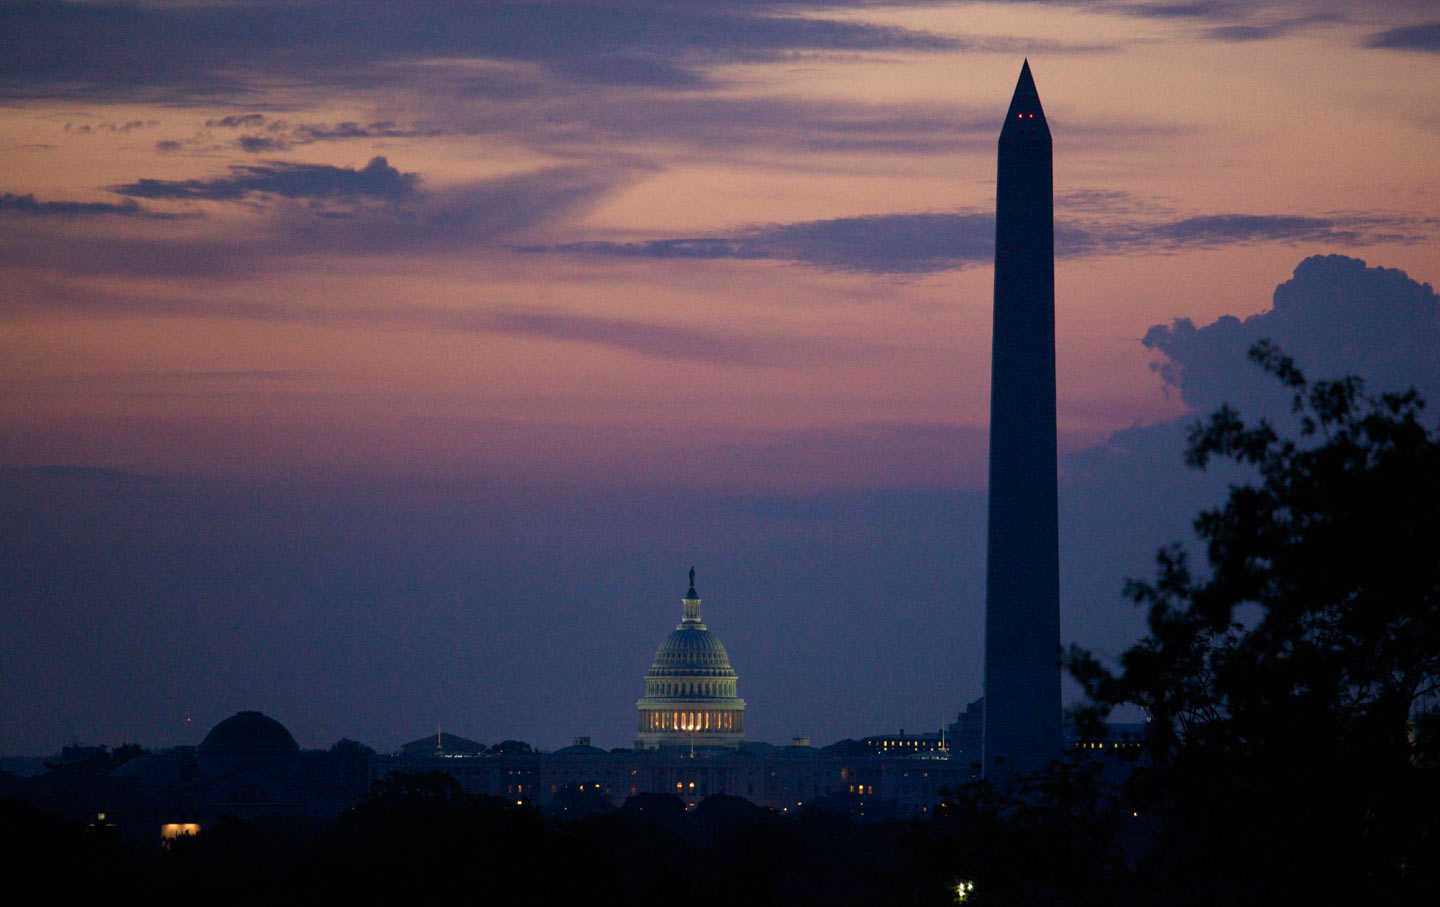 The Washington Monument and US Capitol silhouetted at dawn in Washington, DC.